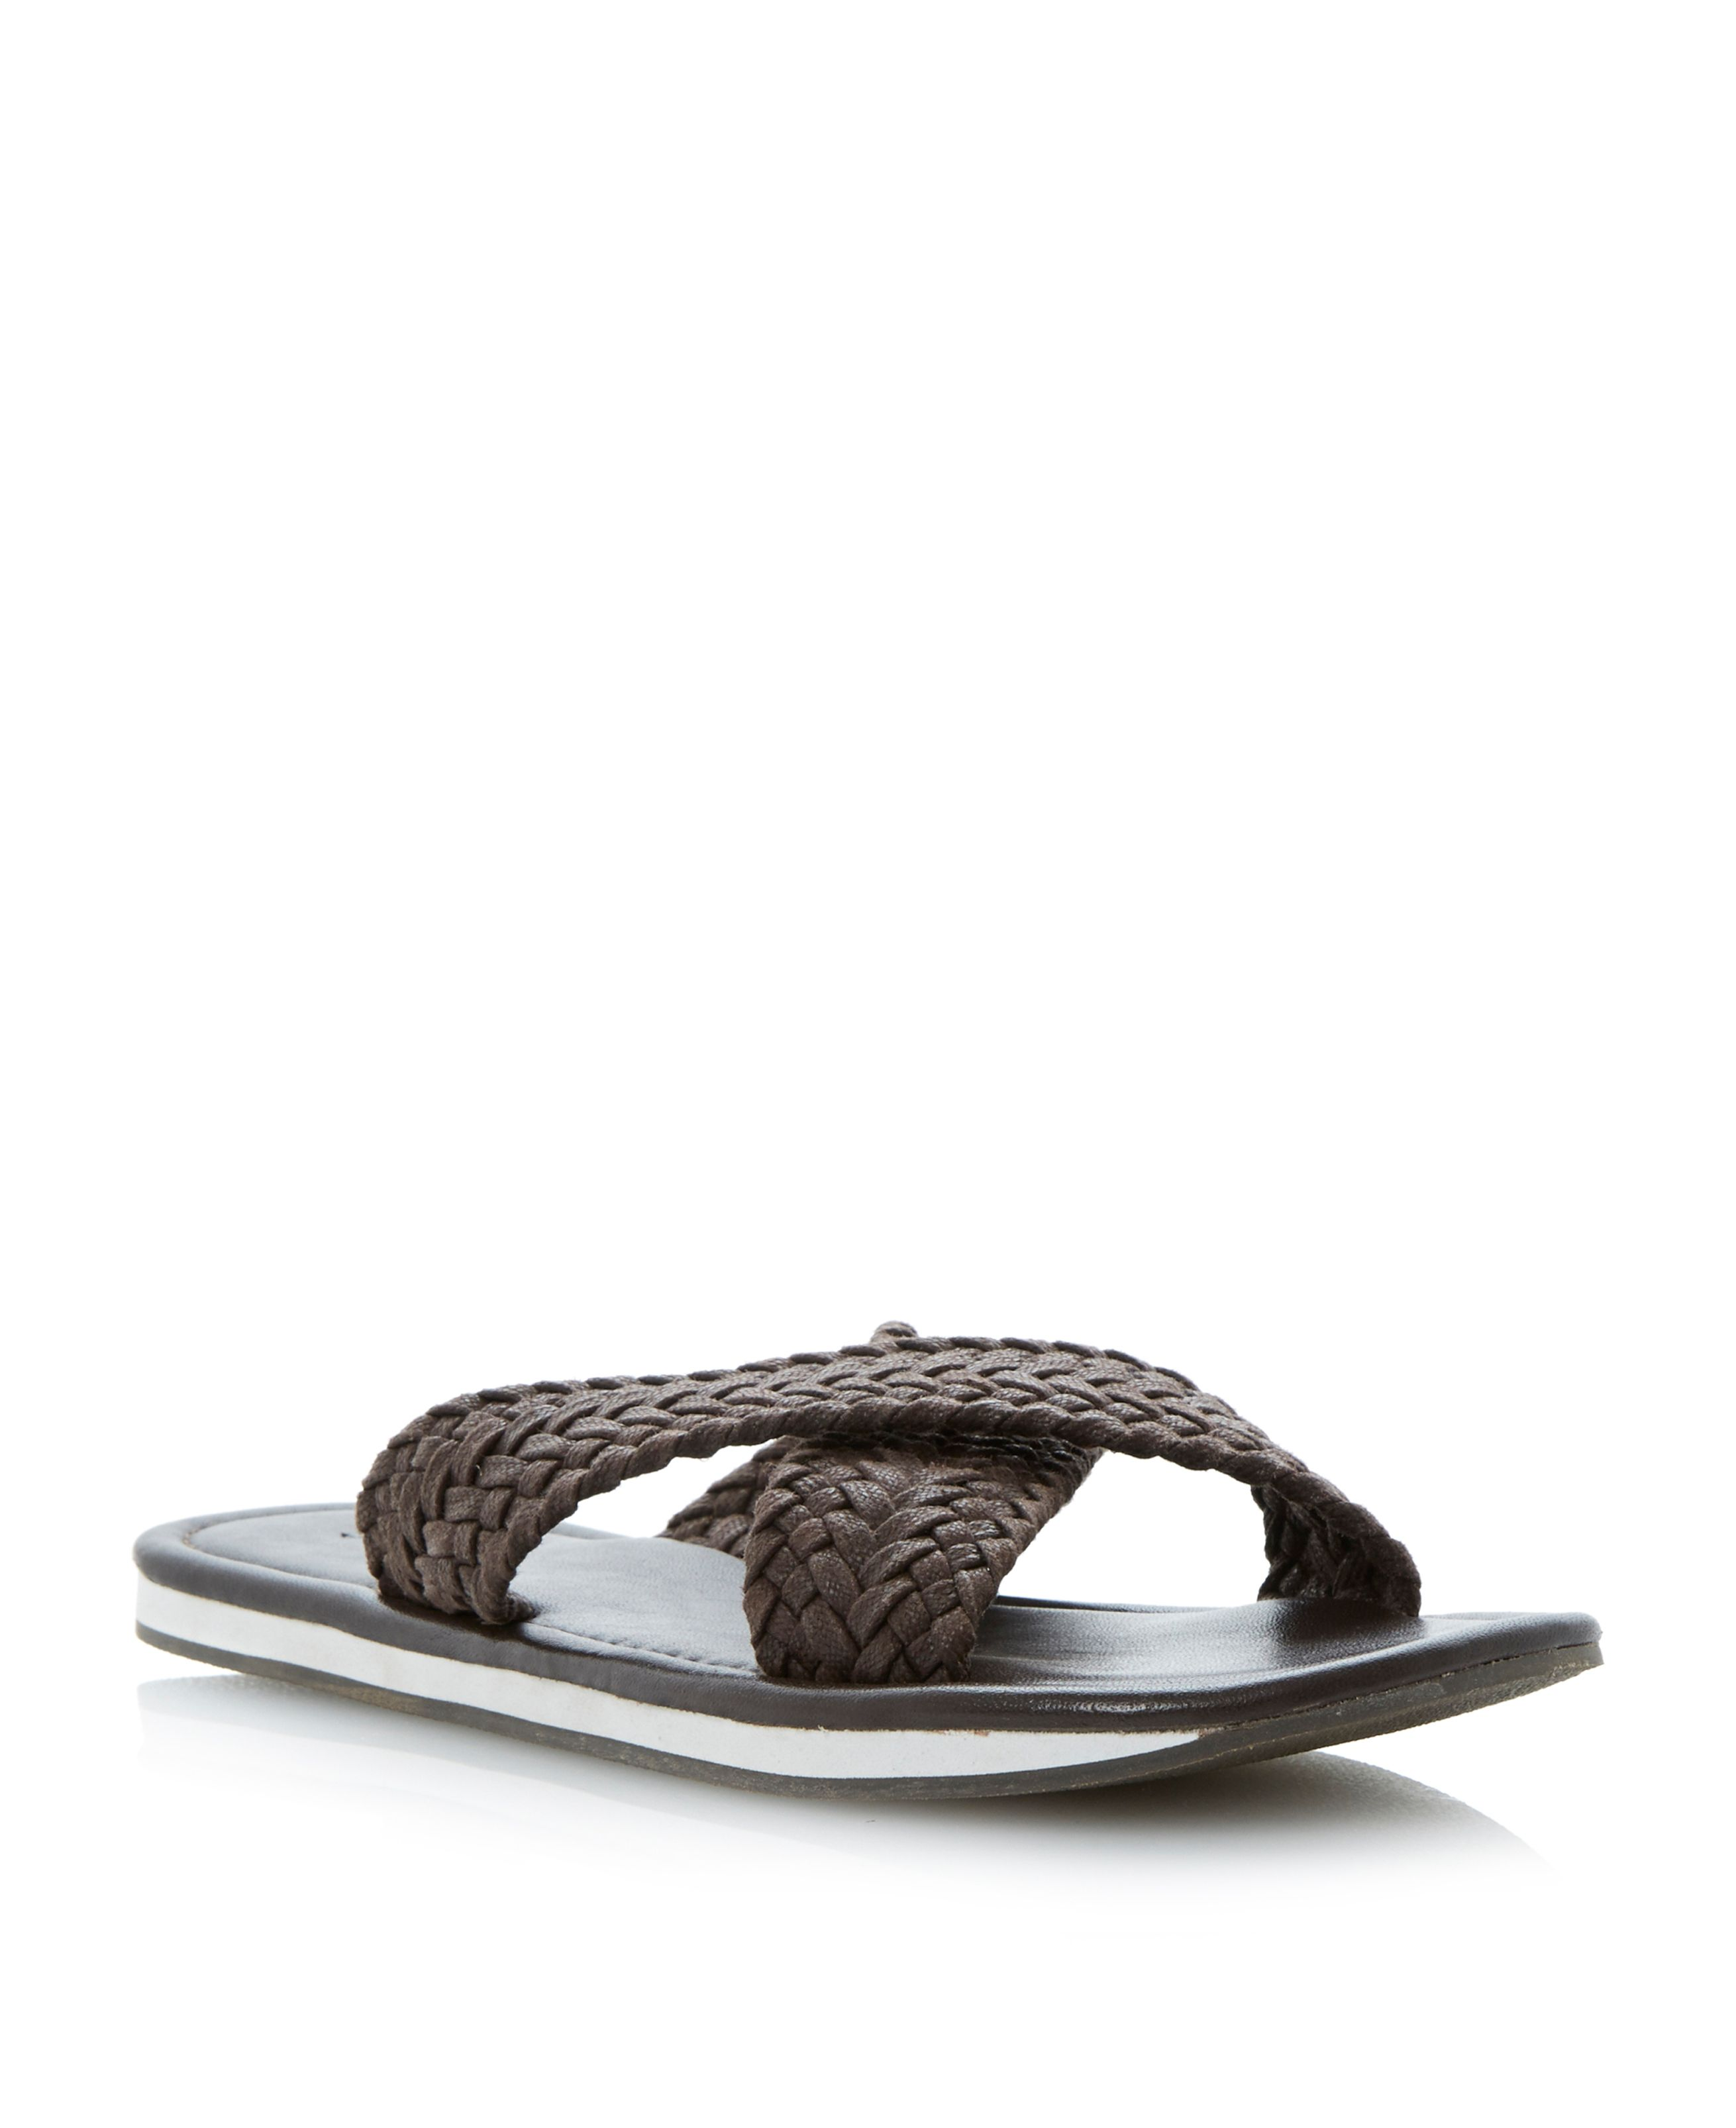 Isaac weave wedge crossover sandals